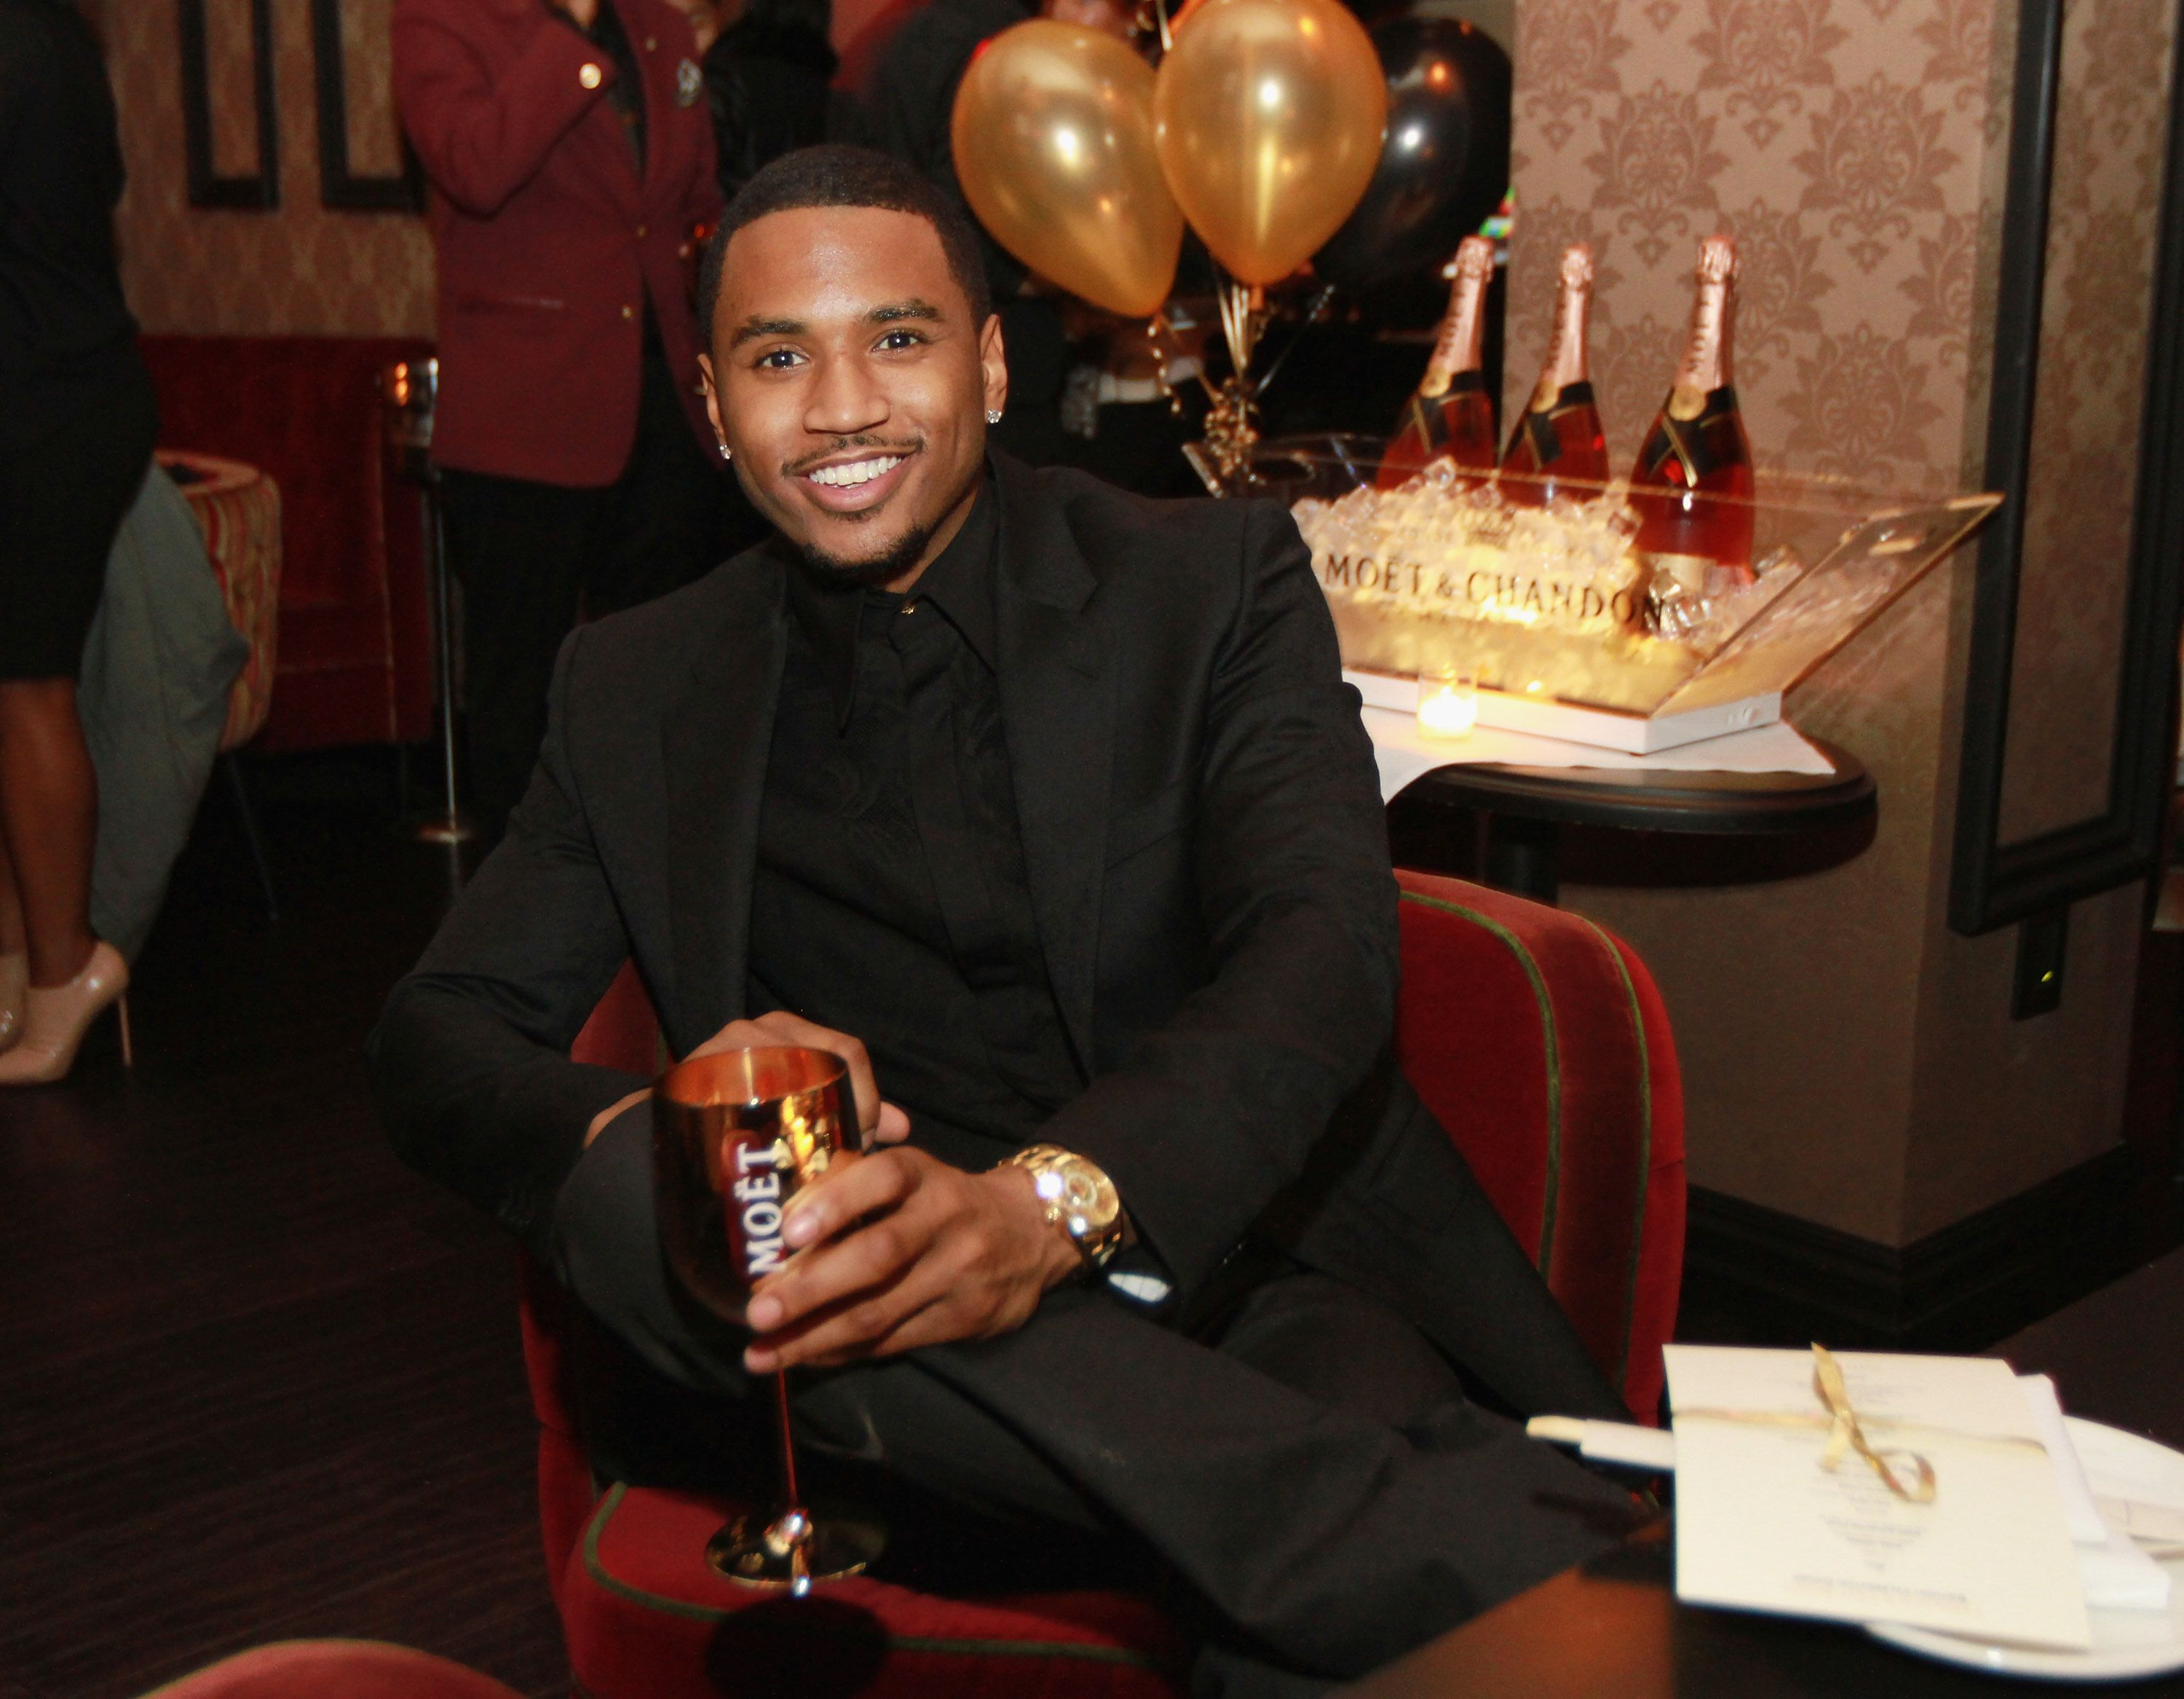 Trey Songz at his and Fabolous' birthday dinner at Cherry on November 22, 2013   Photo: Getty Images